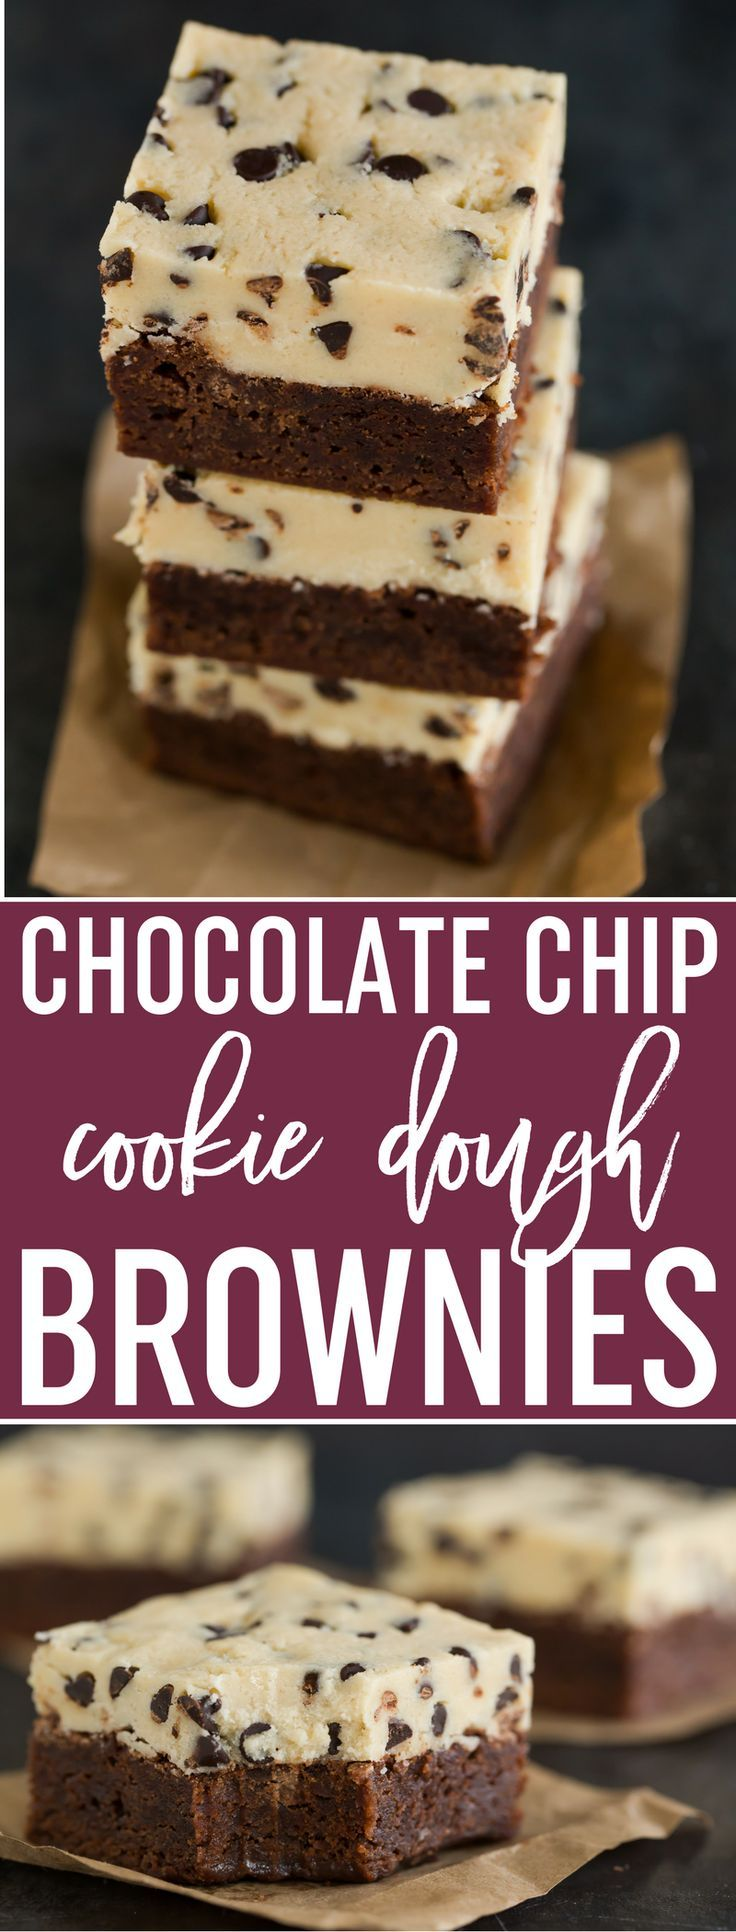 Chocolate Chip Cookie Dough Brownies - A basic fudgy brownie recipe is topped with egg-free cookie dough. A cookie dough lover's dream come true! via @browneyedbaker